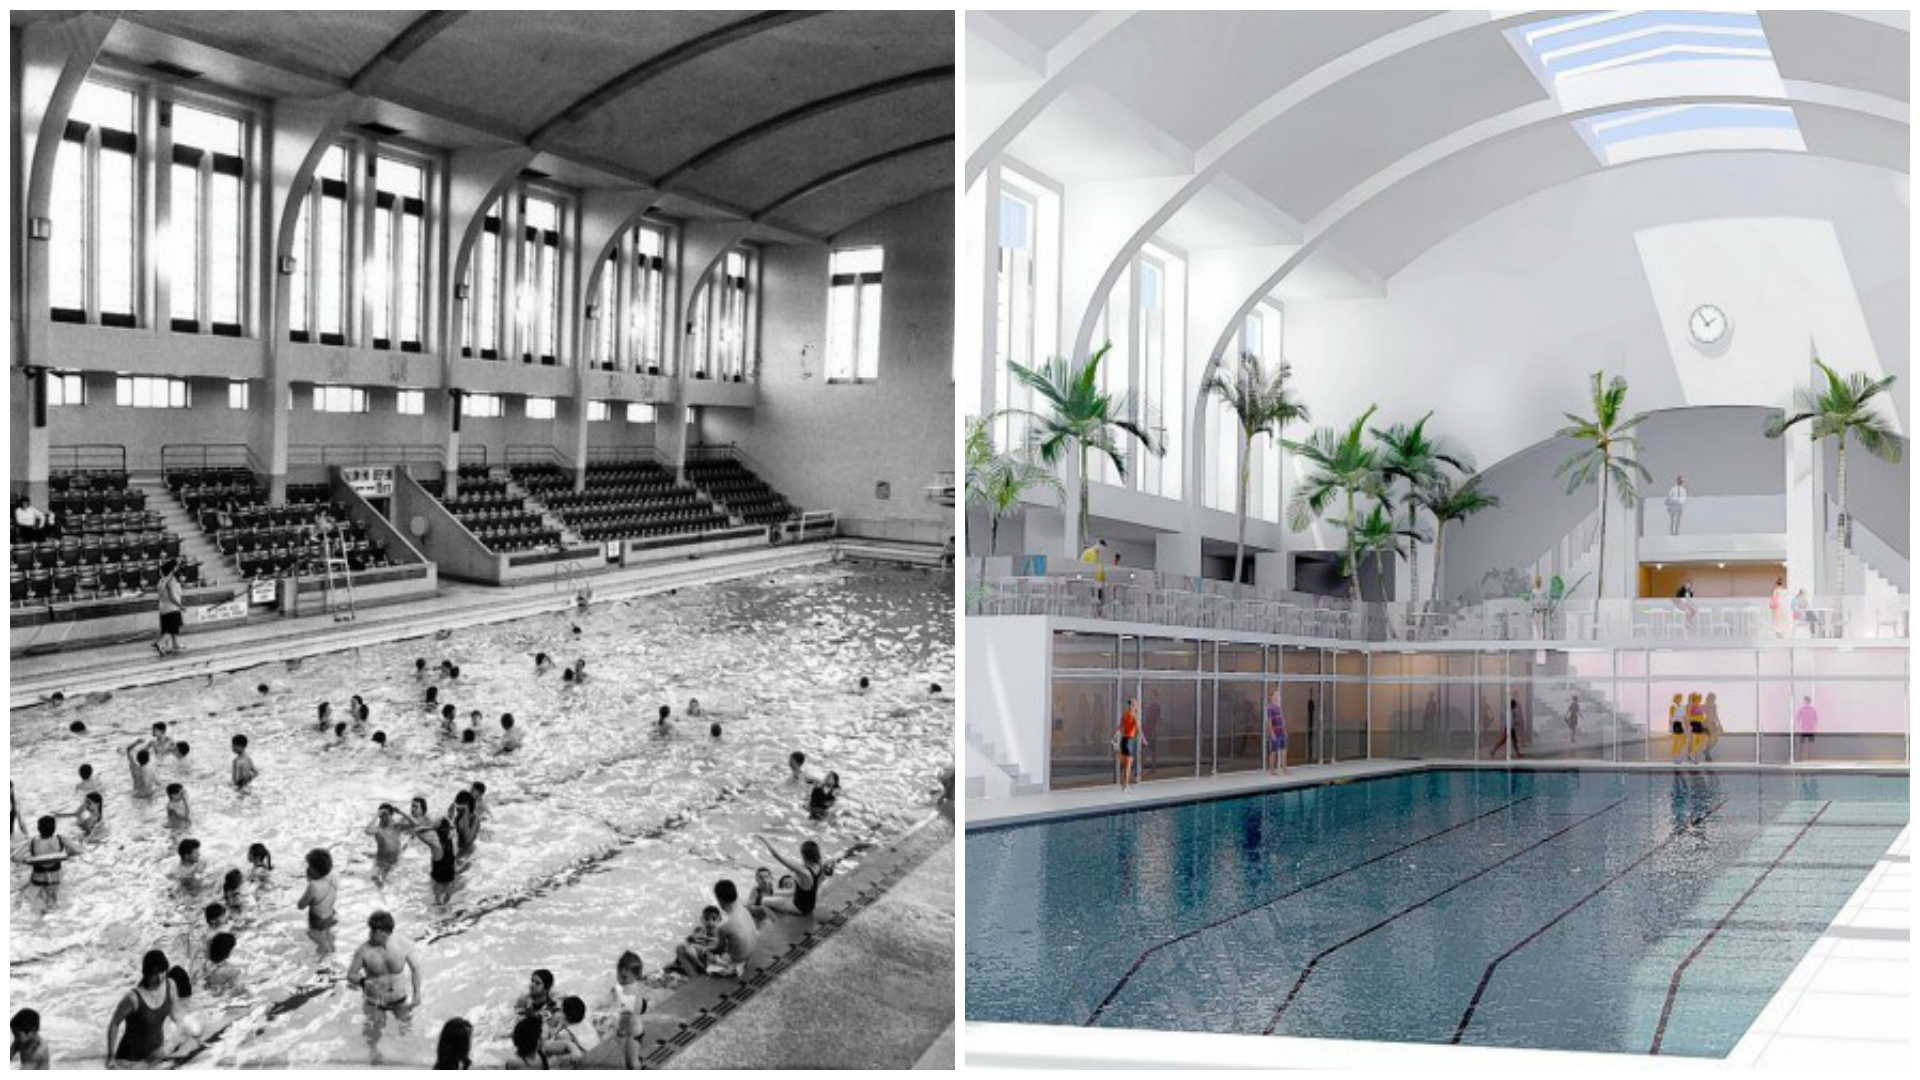 A group of volunteers have a series of plans to restore Bon Accord Baths to their former glory